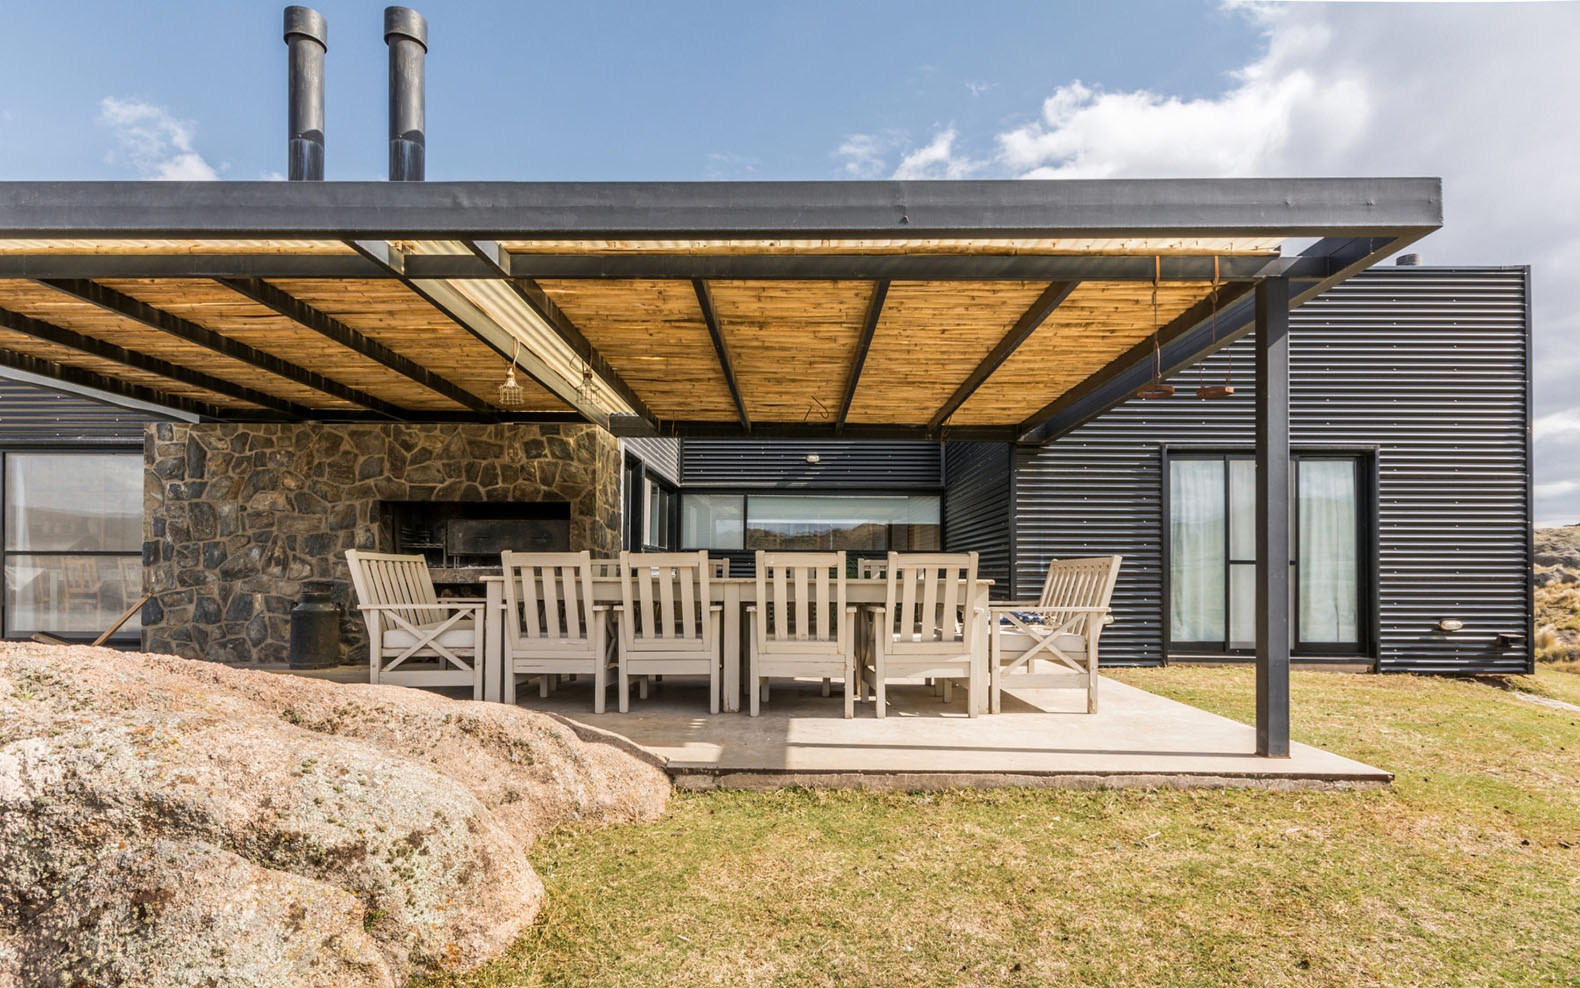 Building Off Grid Homes - Off the grid home the pampa house mariana palacios argentina